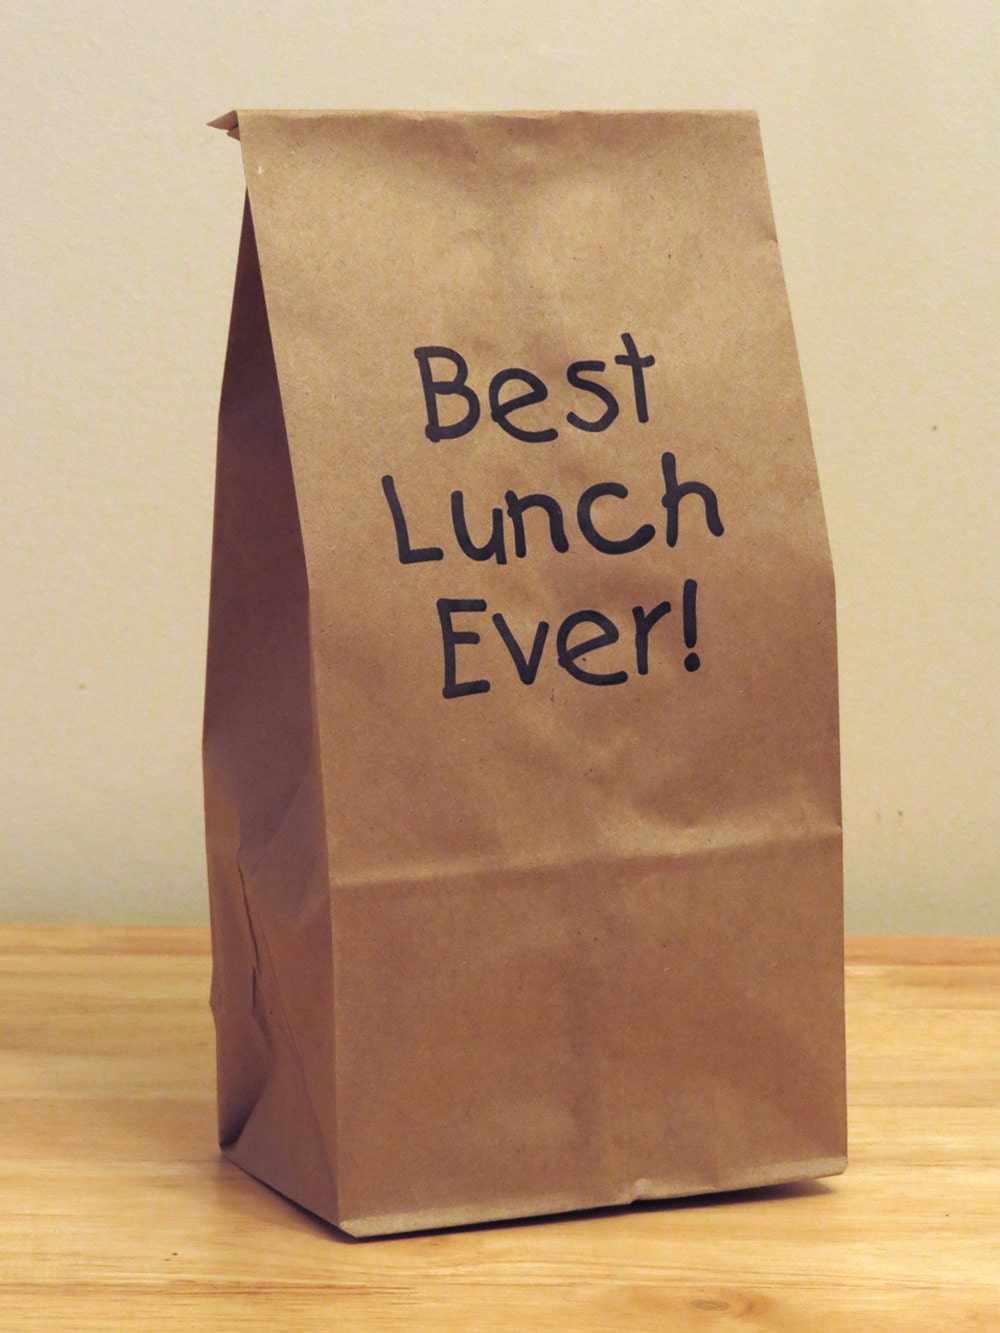 5 Best Lunch Ever Lunch Bags Funny Bag Back to School by sammo